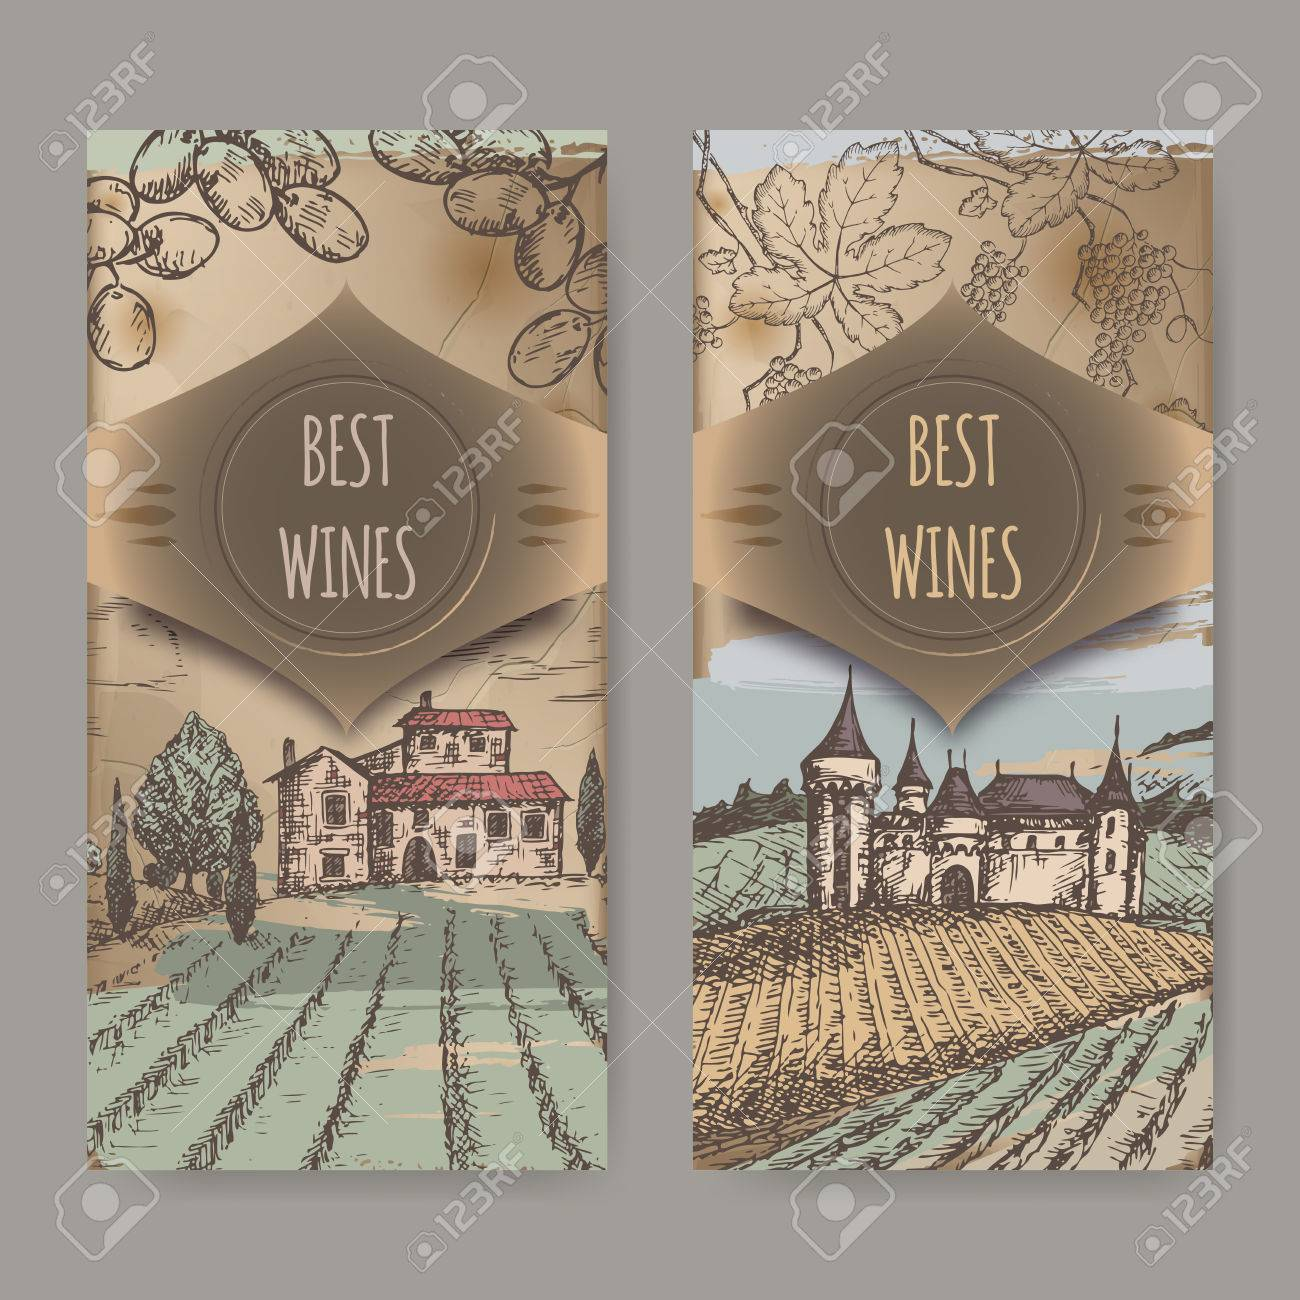 set of two vintage wine label templates with vineyard and castle